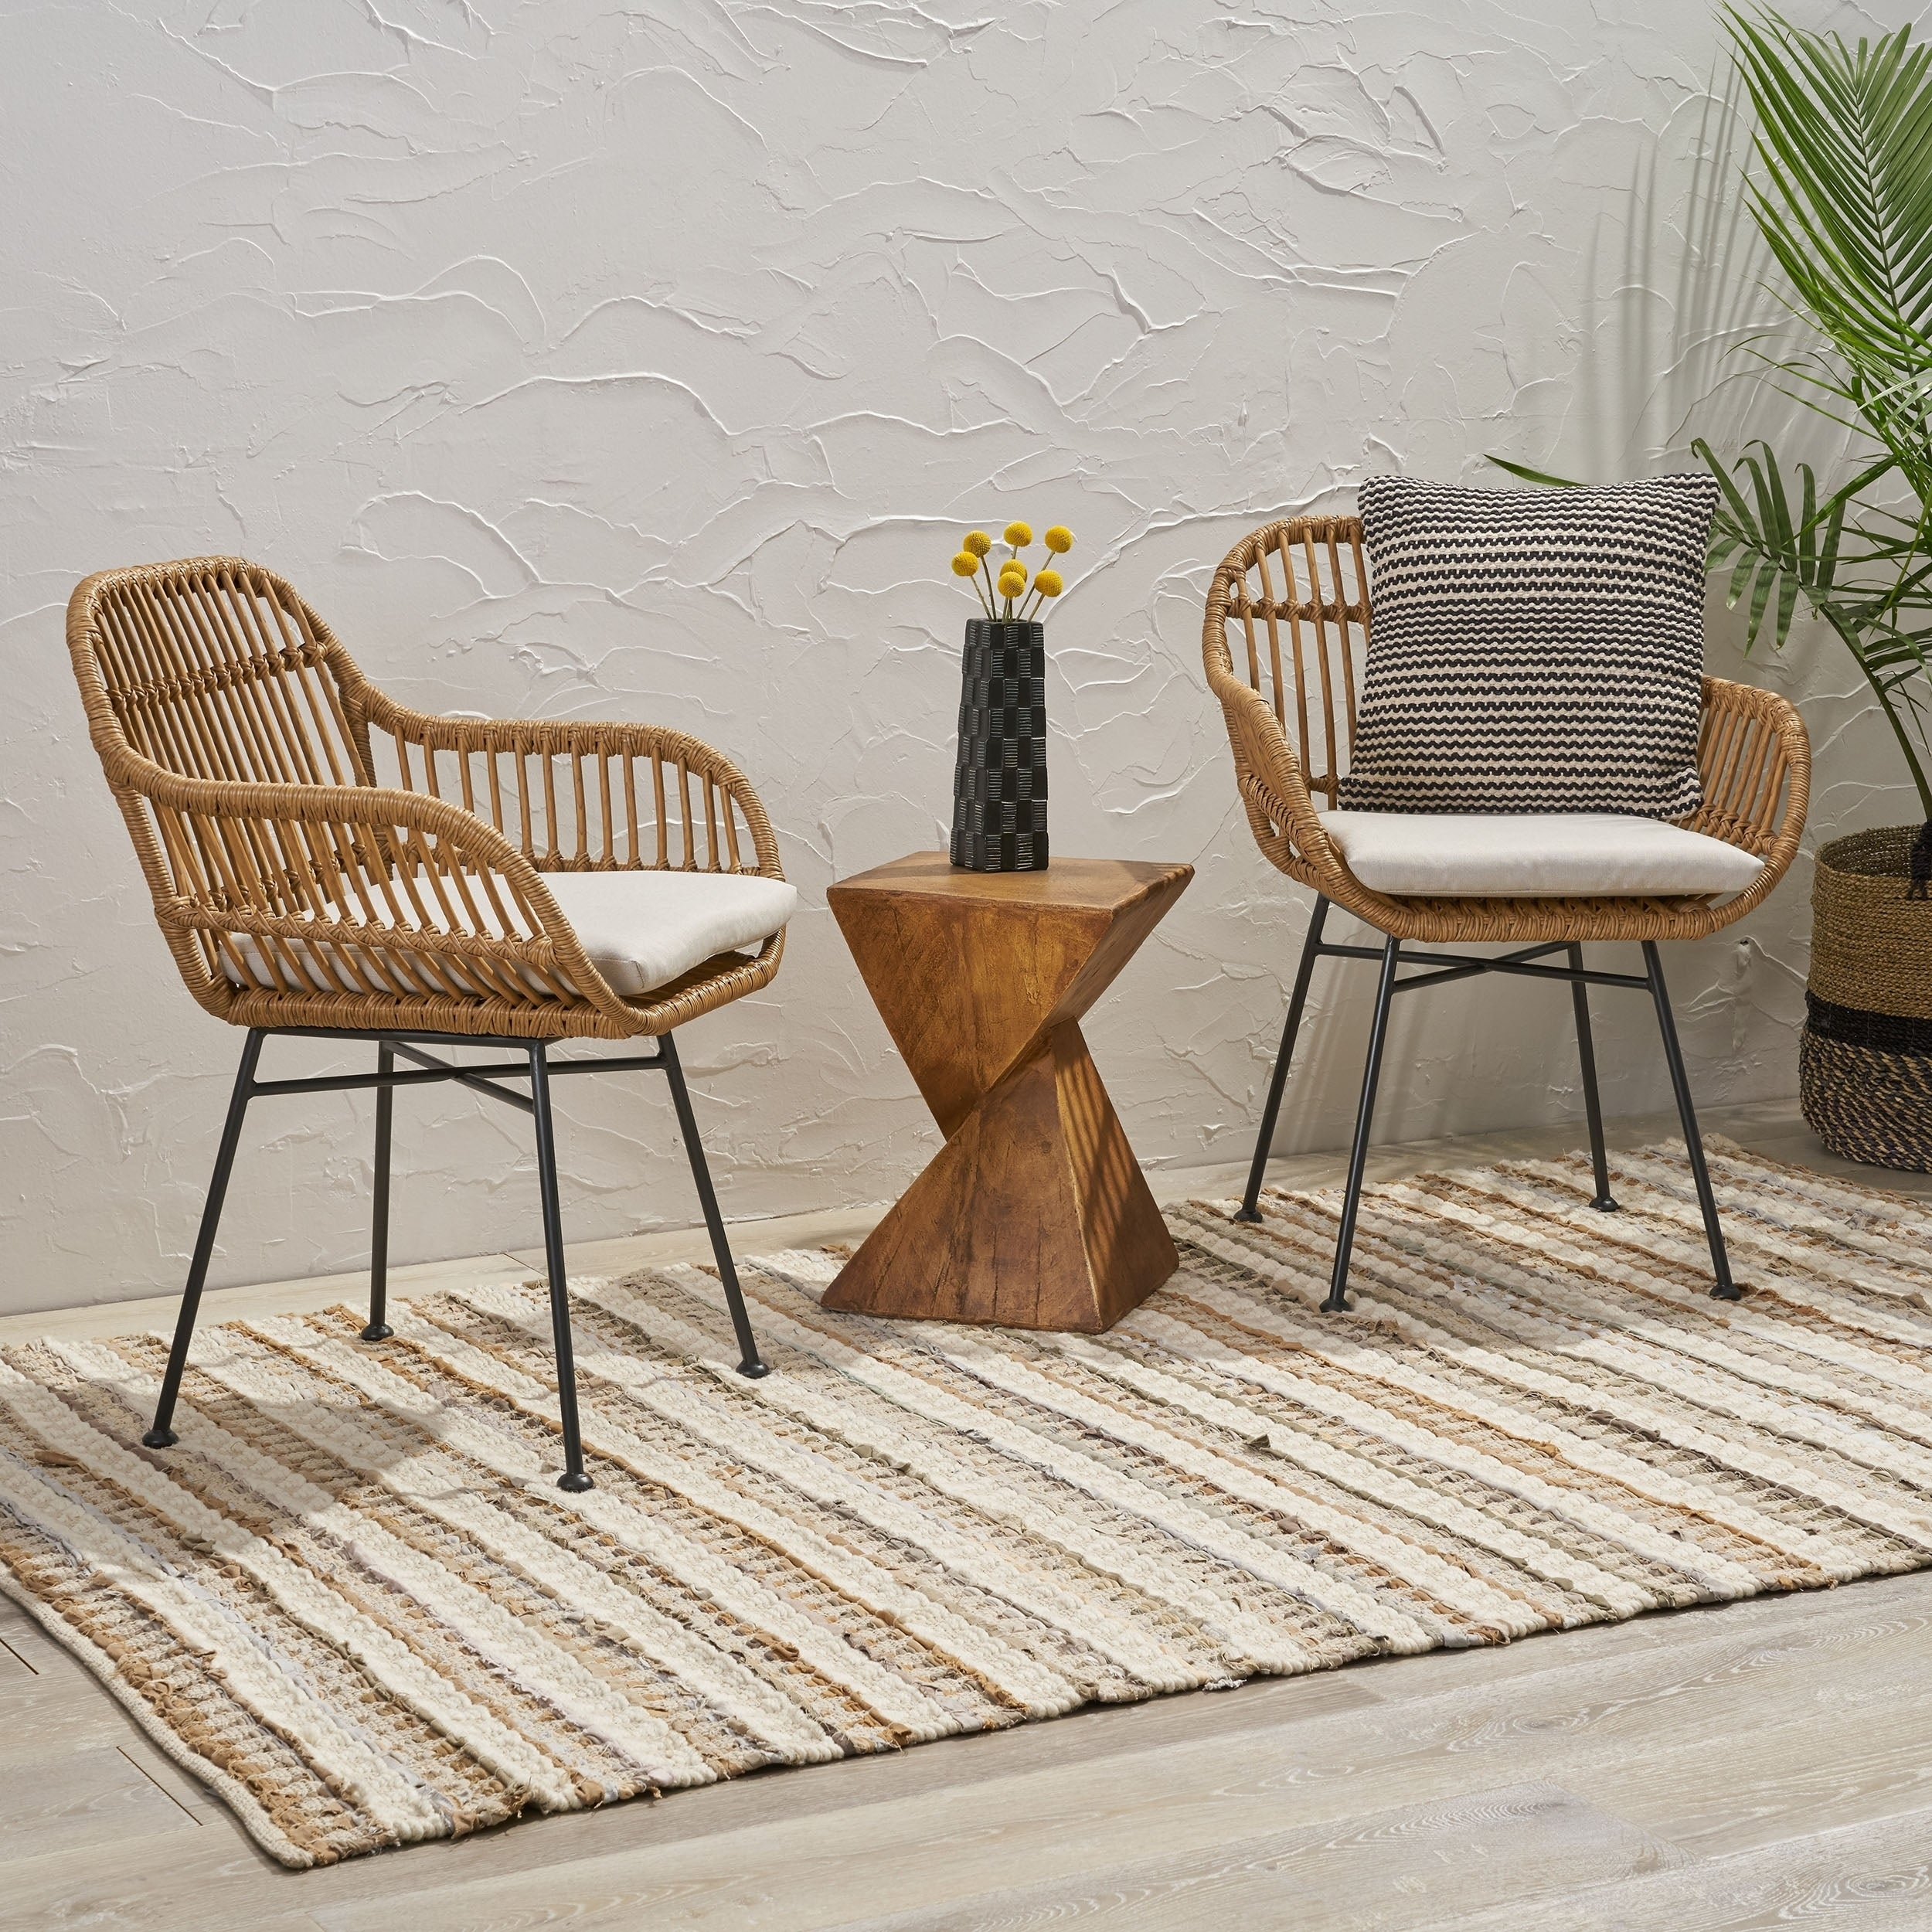 Picture of: Orlando Indoor Woven Faux Rattan Chairs With Cushions Set Of 2 By Christopher Knight Home Overstock 27569189